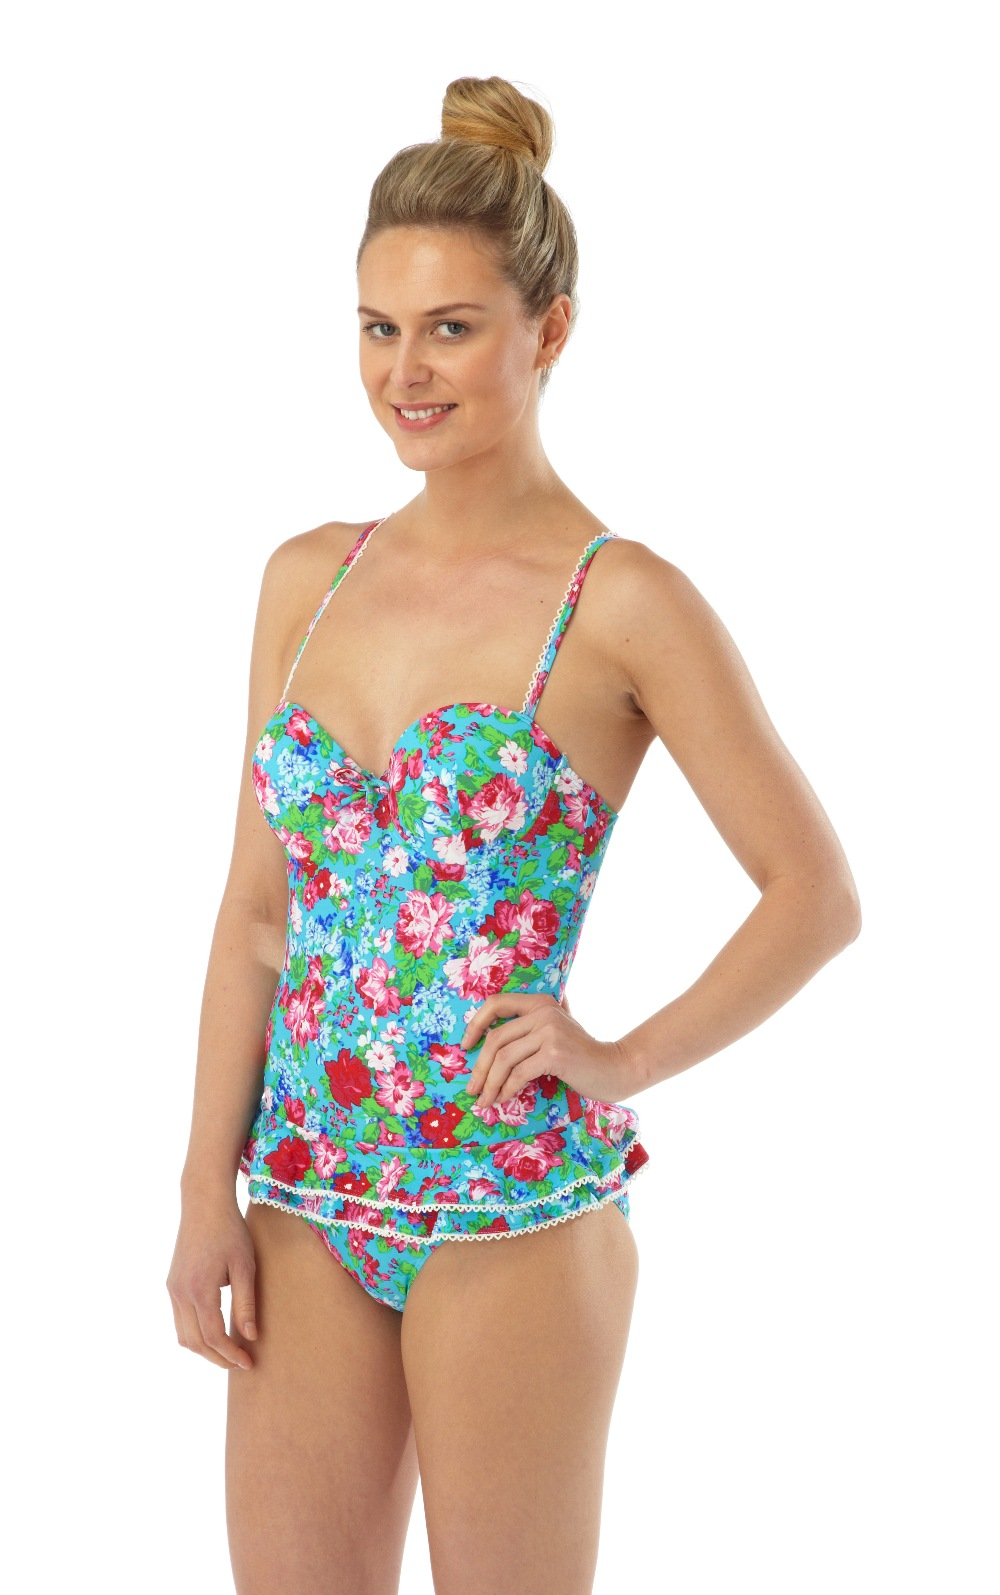 womens floral swimming costume frill skirt underwired